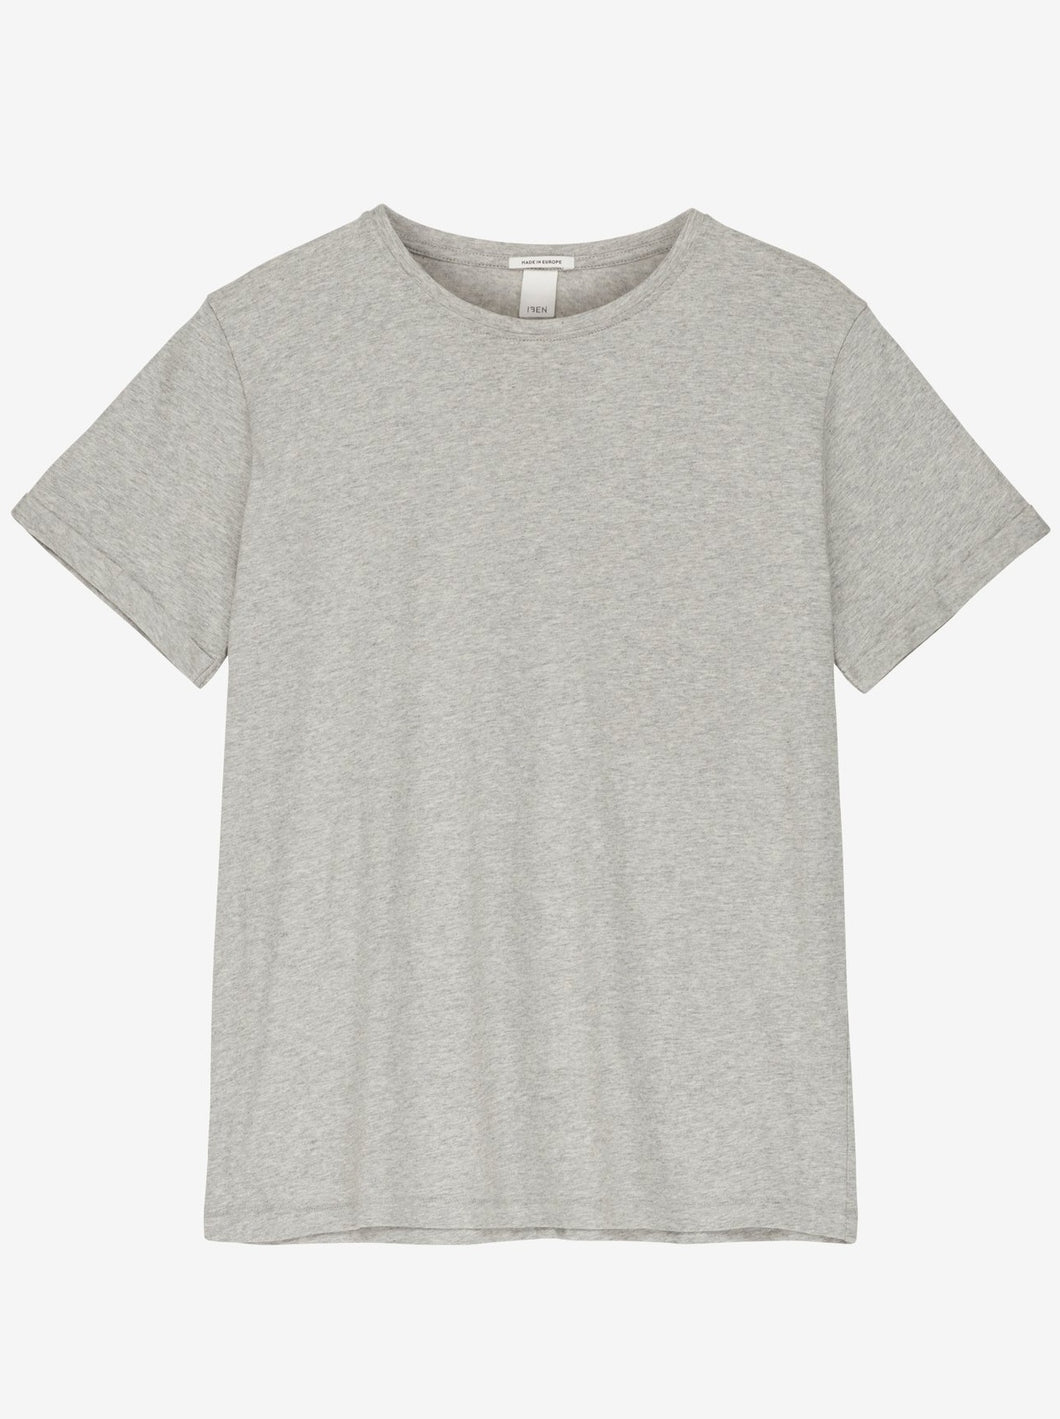 BO TEE AN | LIGHT GREY | IBEN